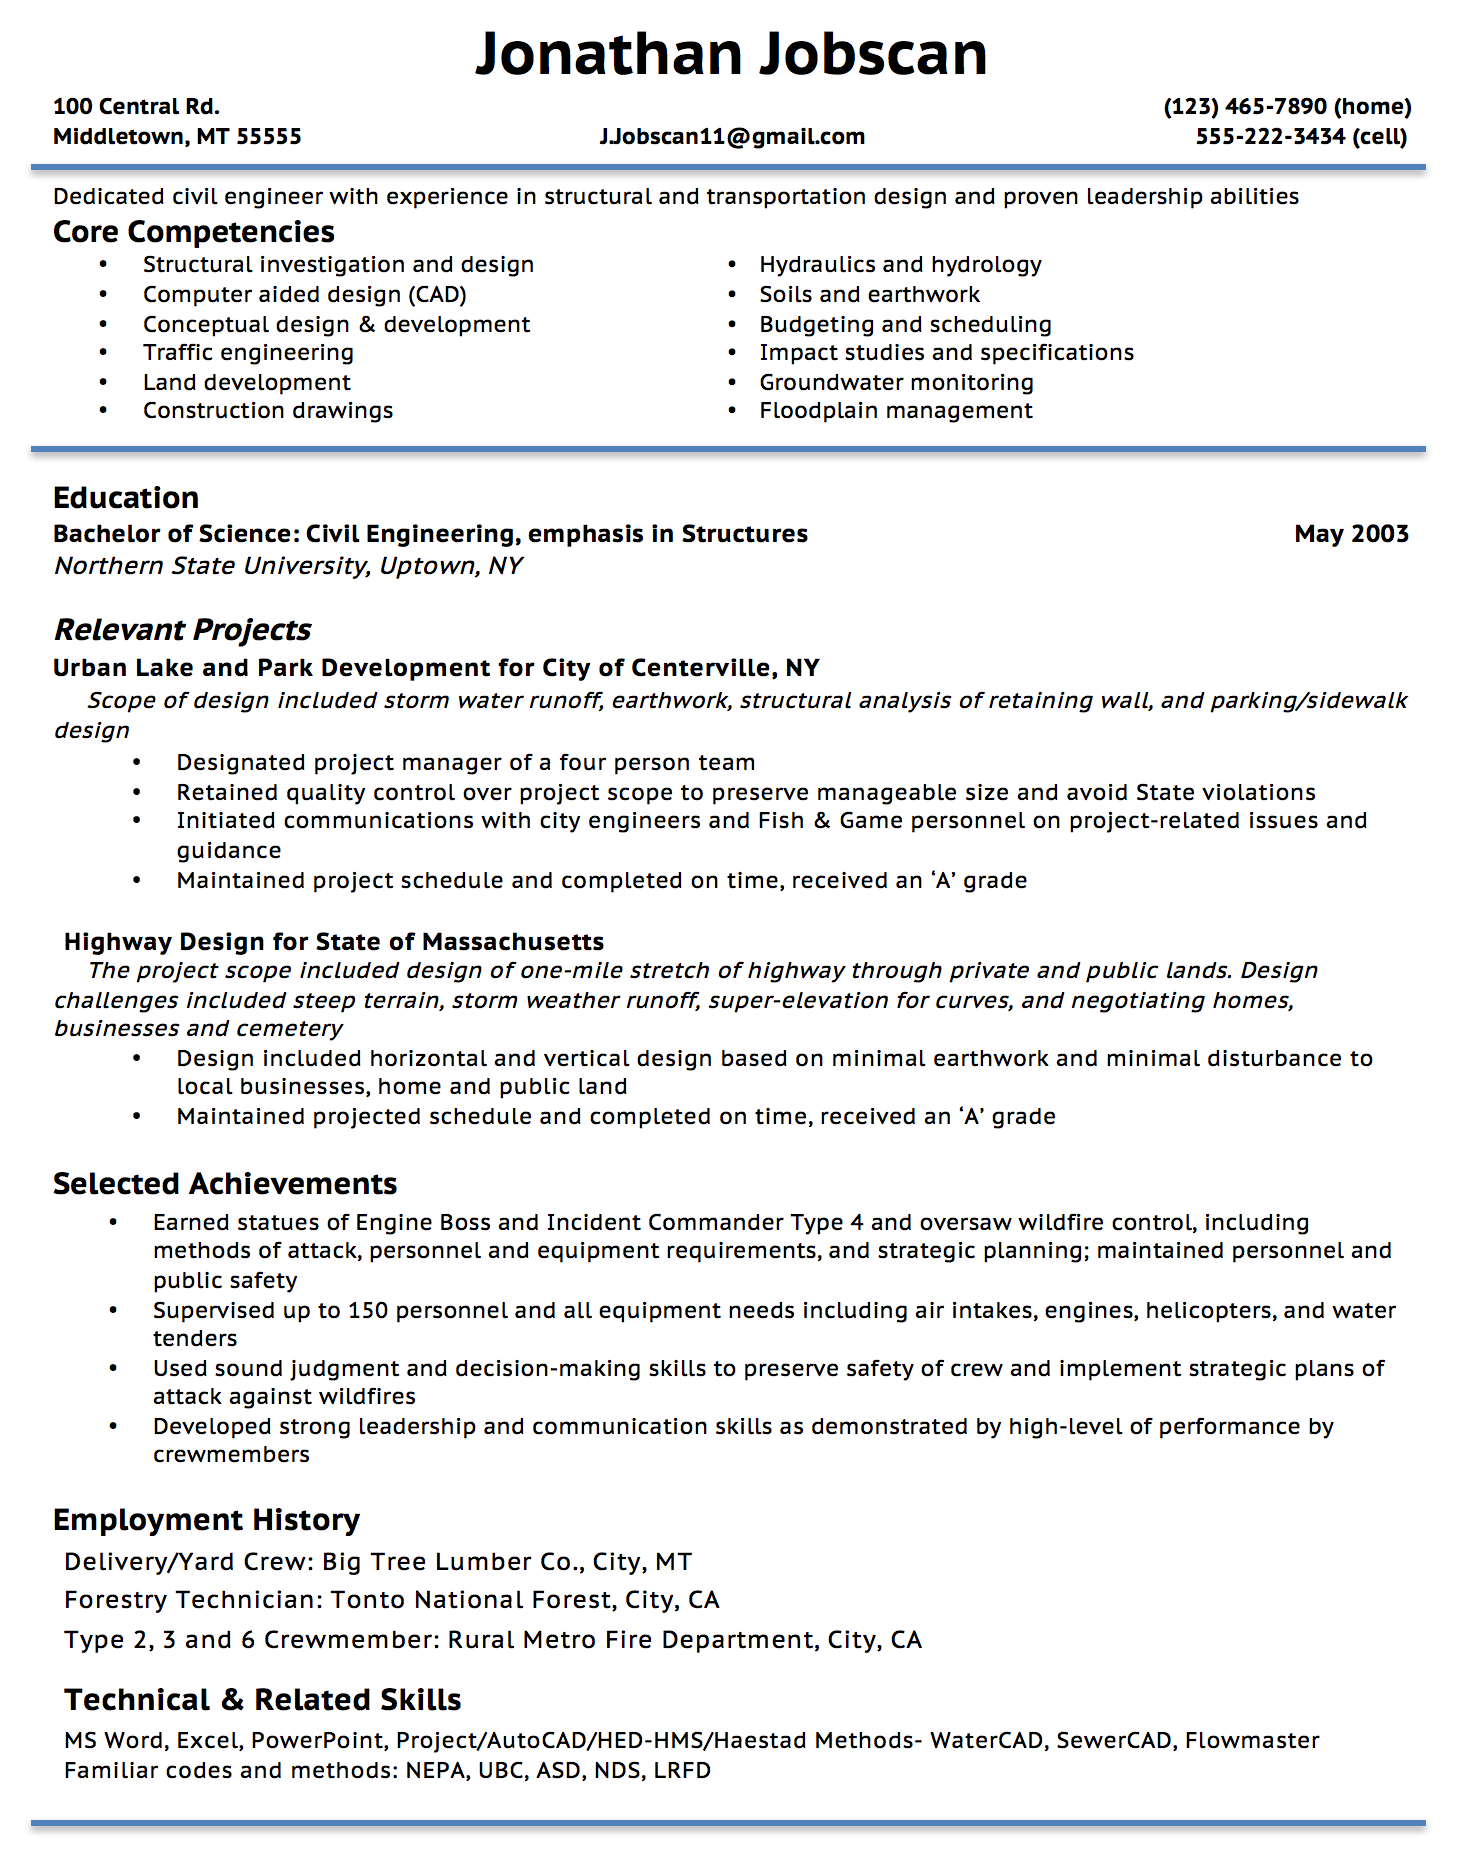 Picnictoimpeachus  Splendid Resume Writing Guide  Jobscan With Remarkable Example Of A Functional Resume Format With Delightful Sap Business Analyst Resume Also Educator Resume Template In Addition Resume For Hospital Job And What Is A Video Resume As Well As Is Cv A Resume Additionally Create An Online Resume From Jobscanco With Picnictoimpeachus  Remarkable Resume Writing Guide  Jobscan With Delightful Example Of A Functional Resume Format And Splendid Sap Business Analyst Resume Also Educator Resume Template In Addition Resume For Hospital Job From Jobscanco